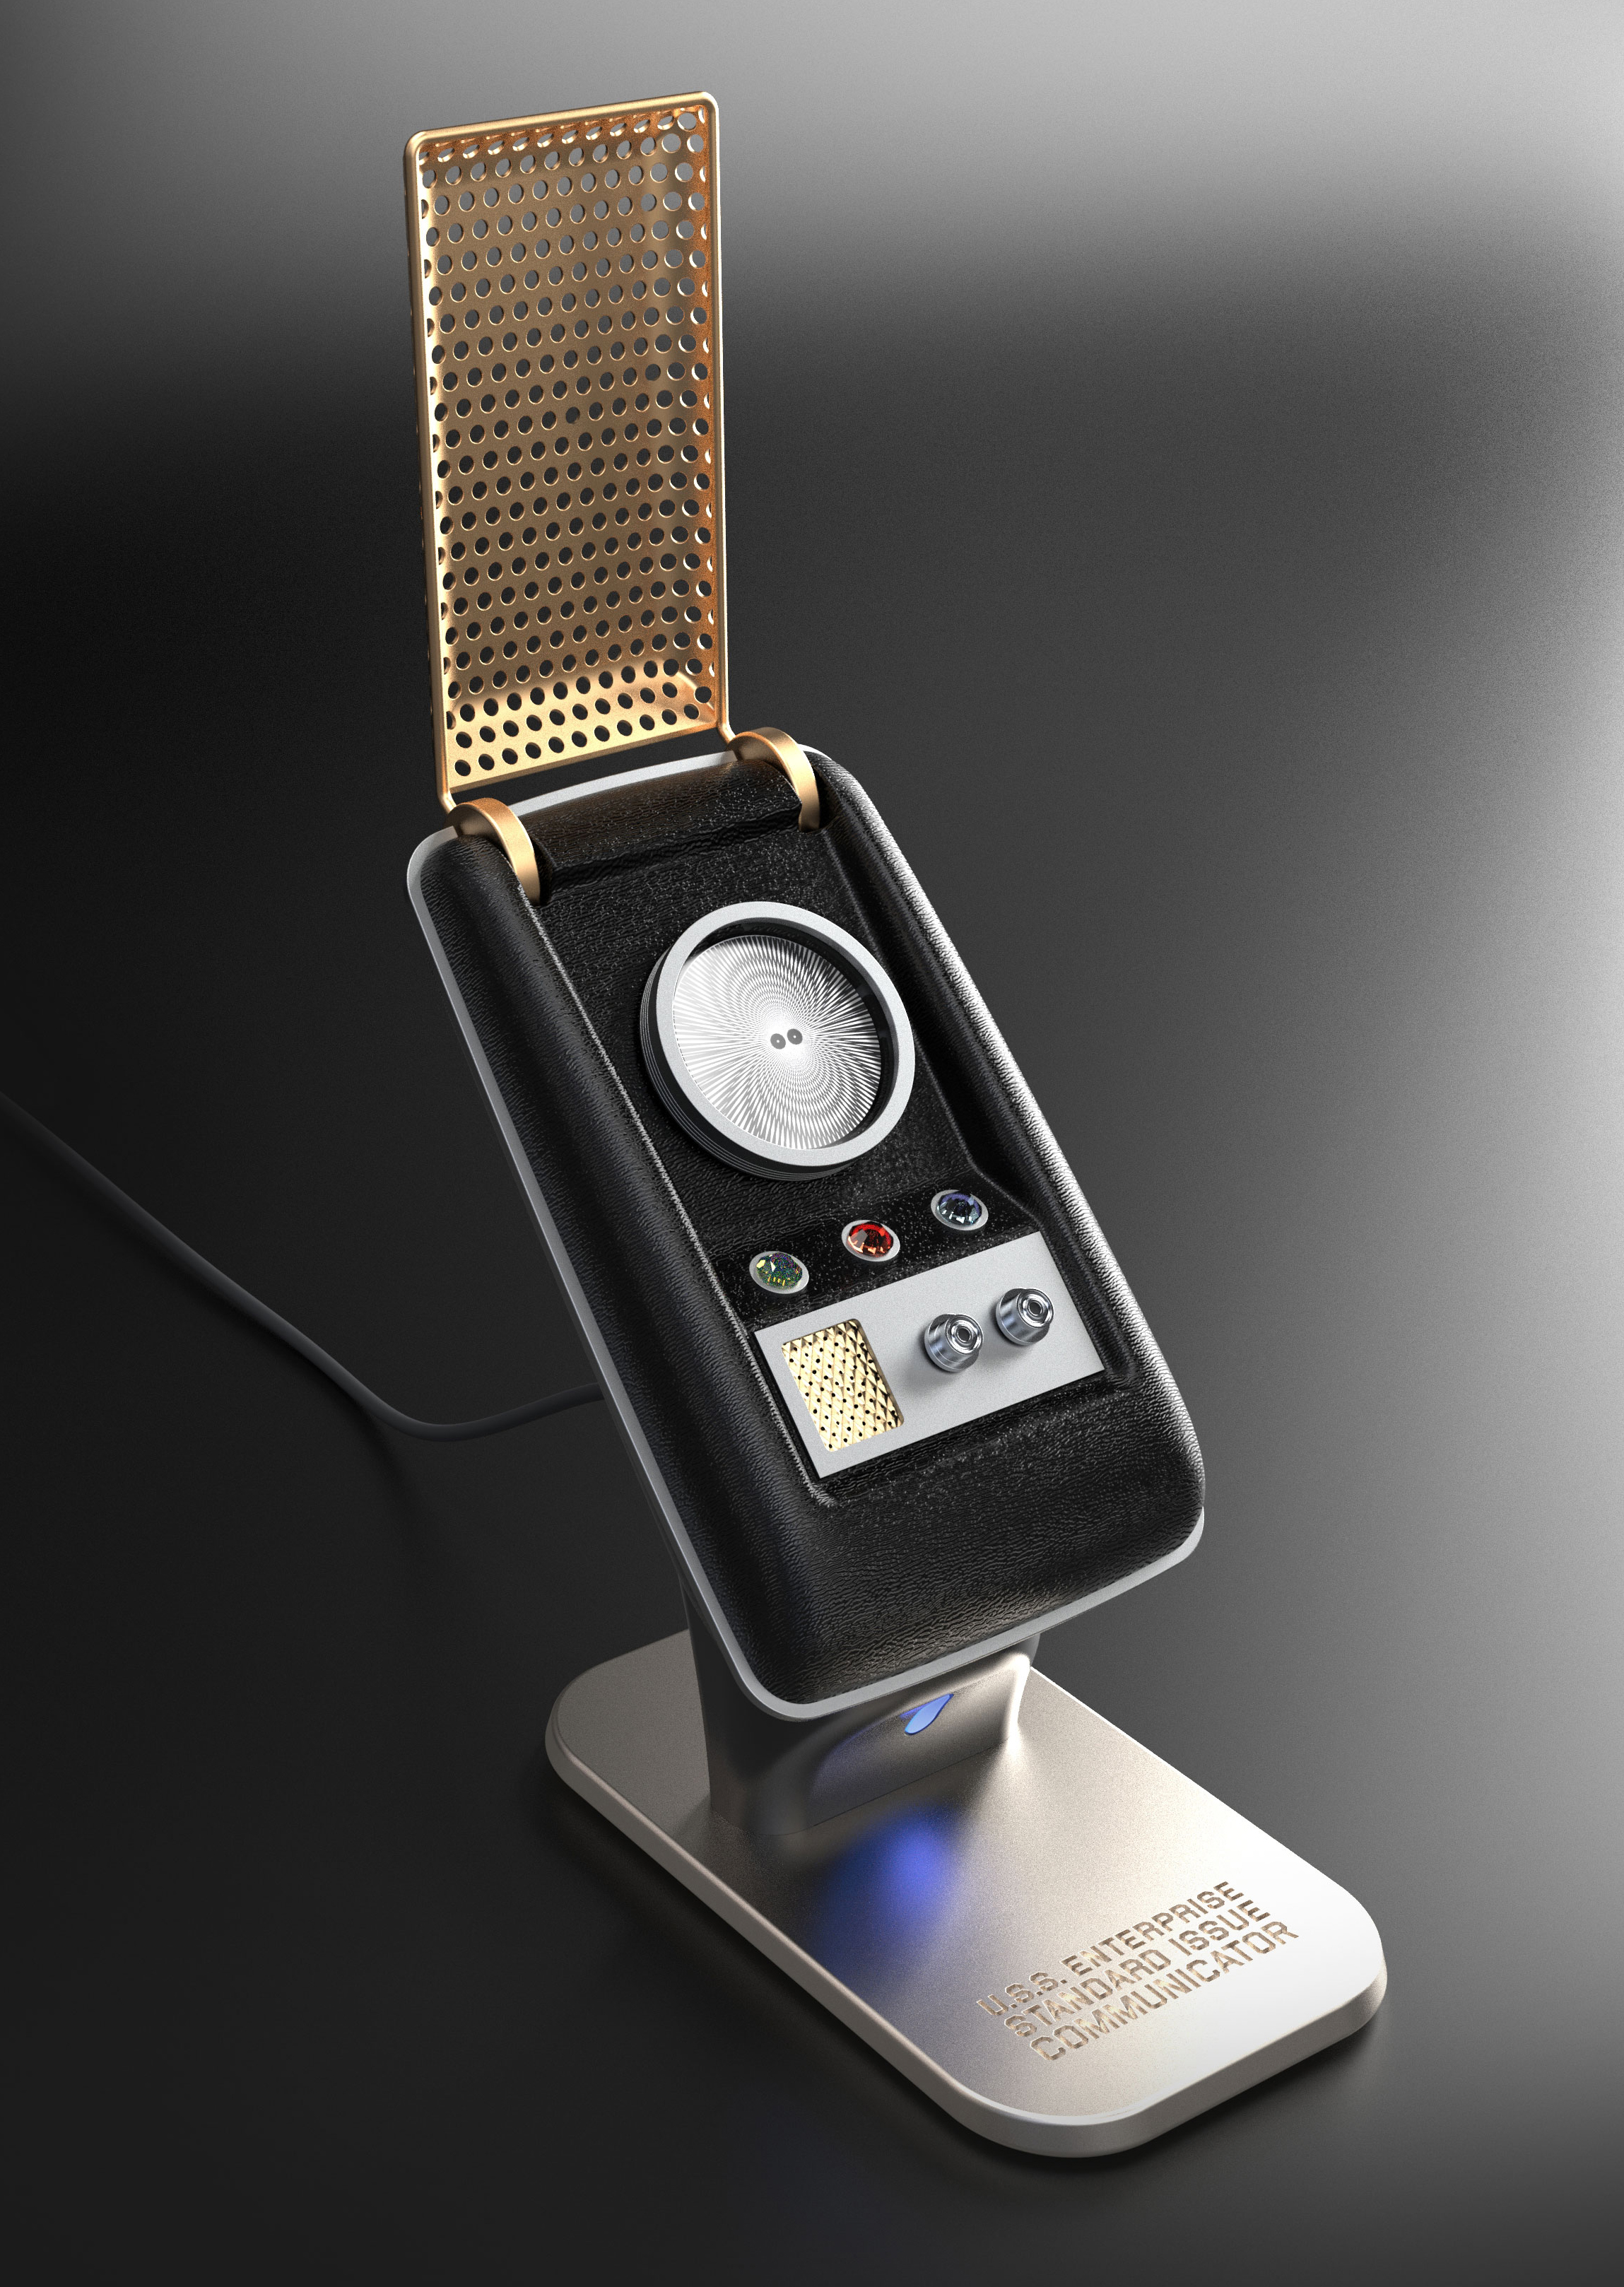 Bluetooth Star Trek communicator shows just how awesome